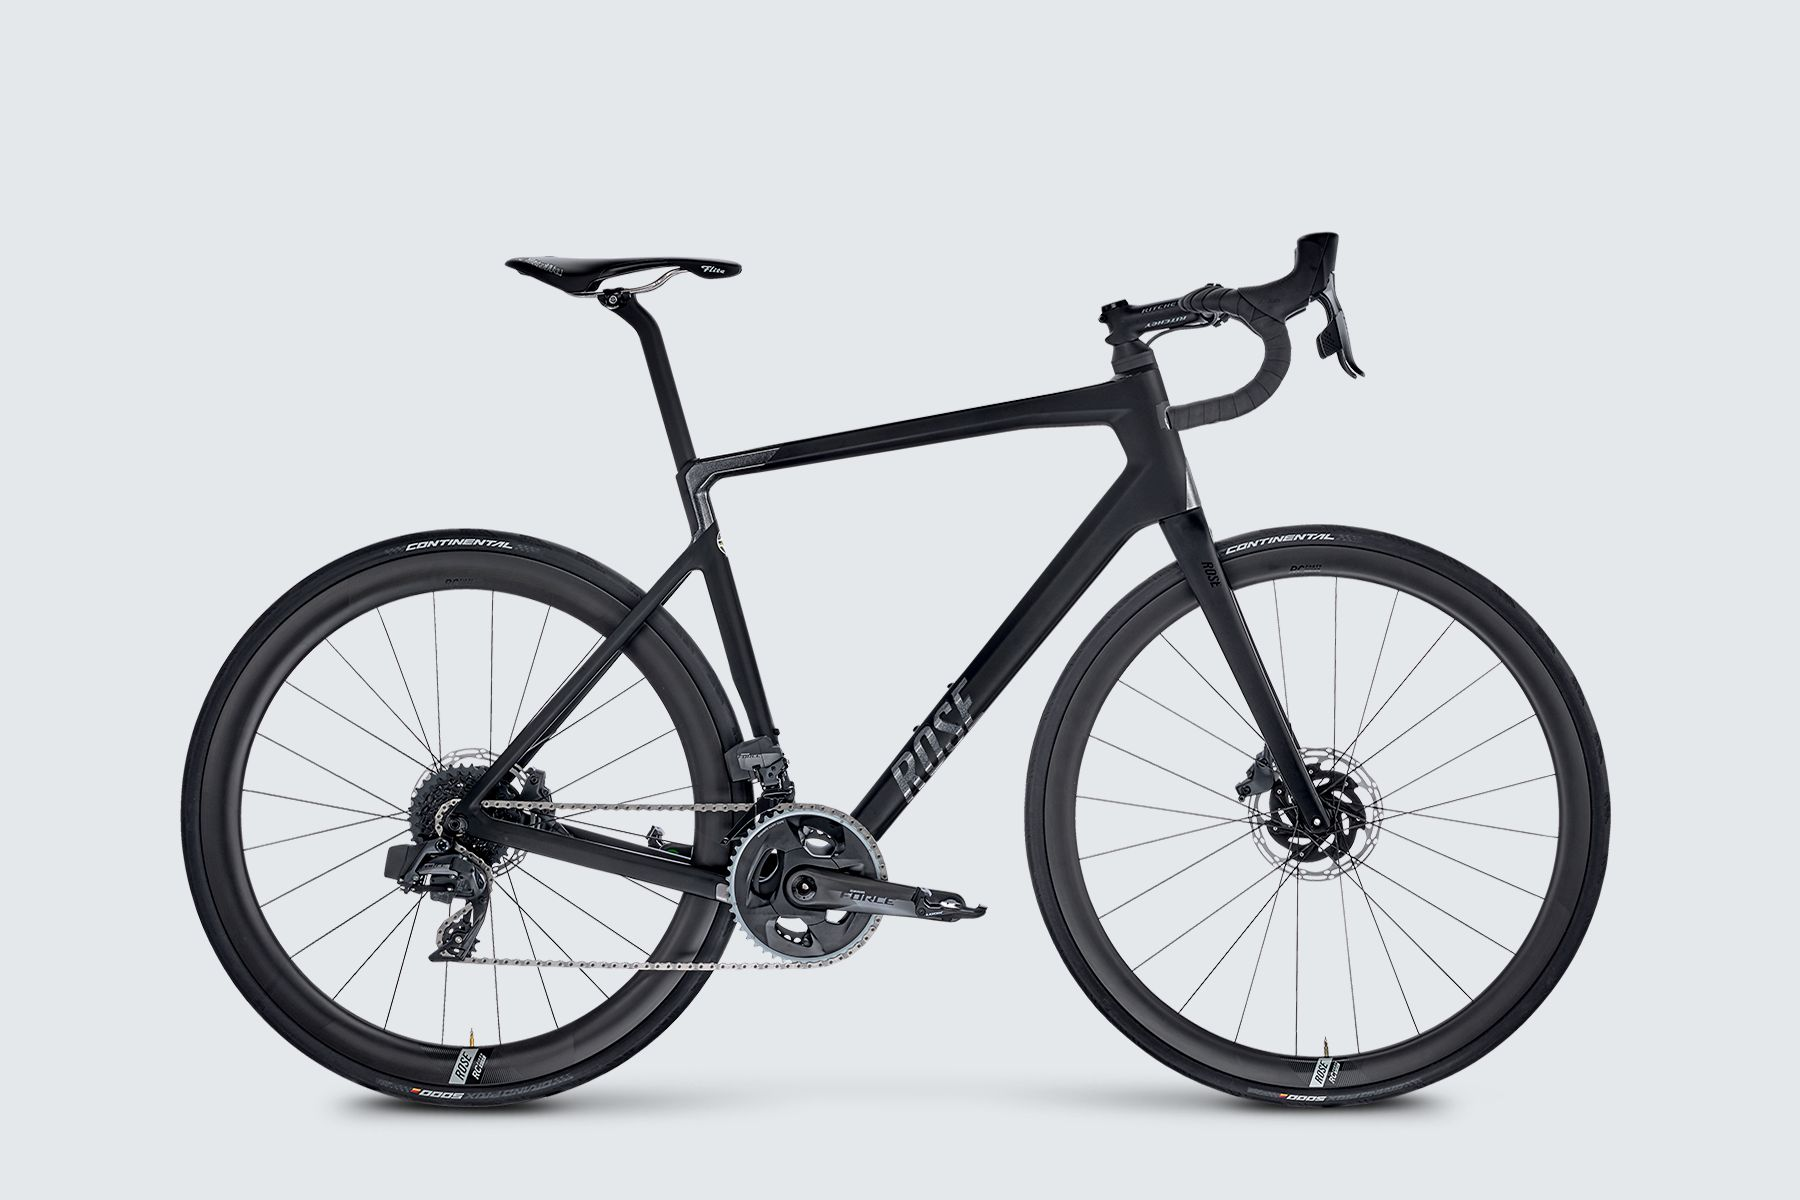 REVEAL SIX DISC Force eTap AXS